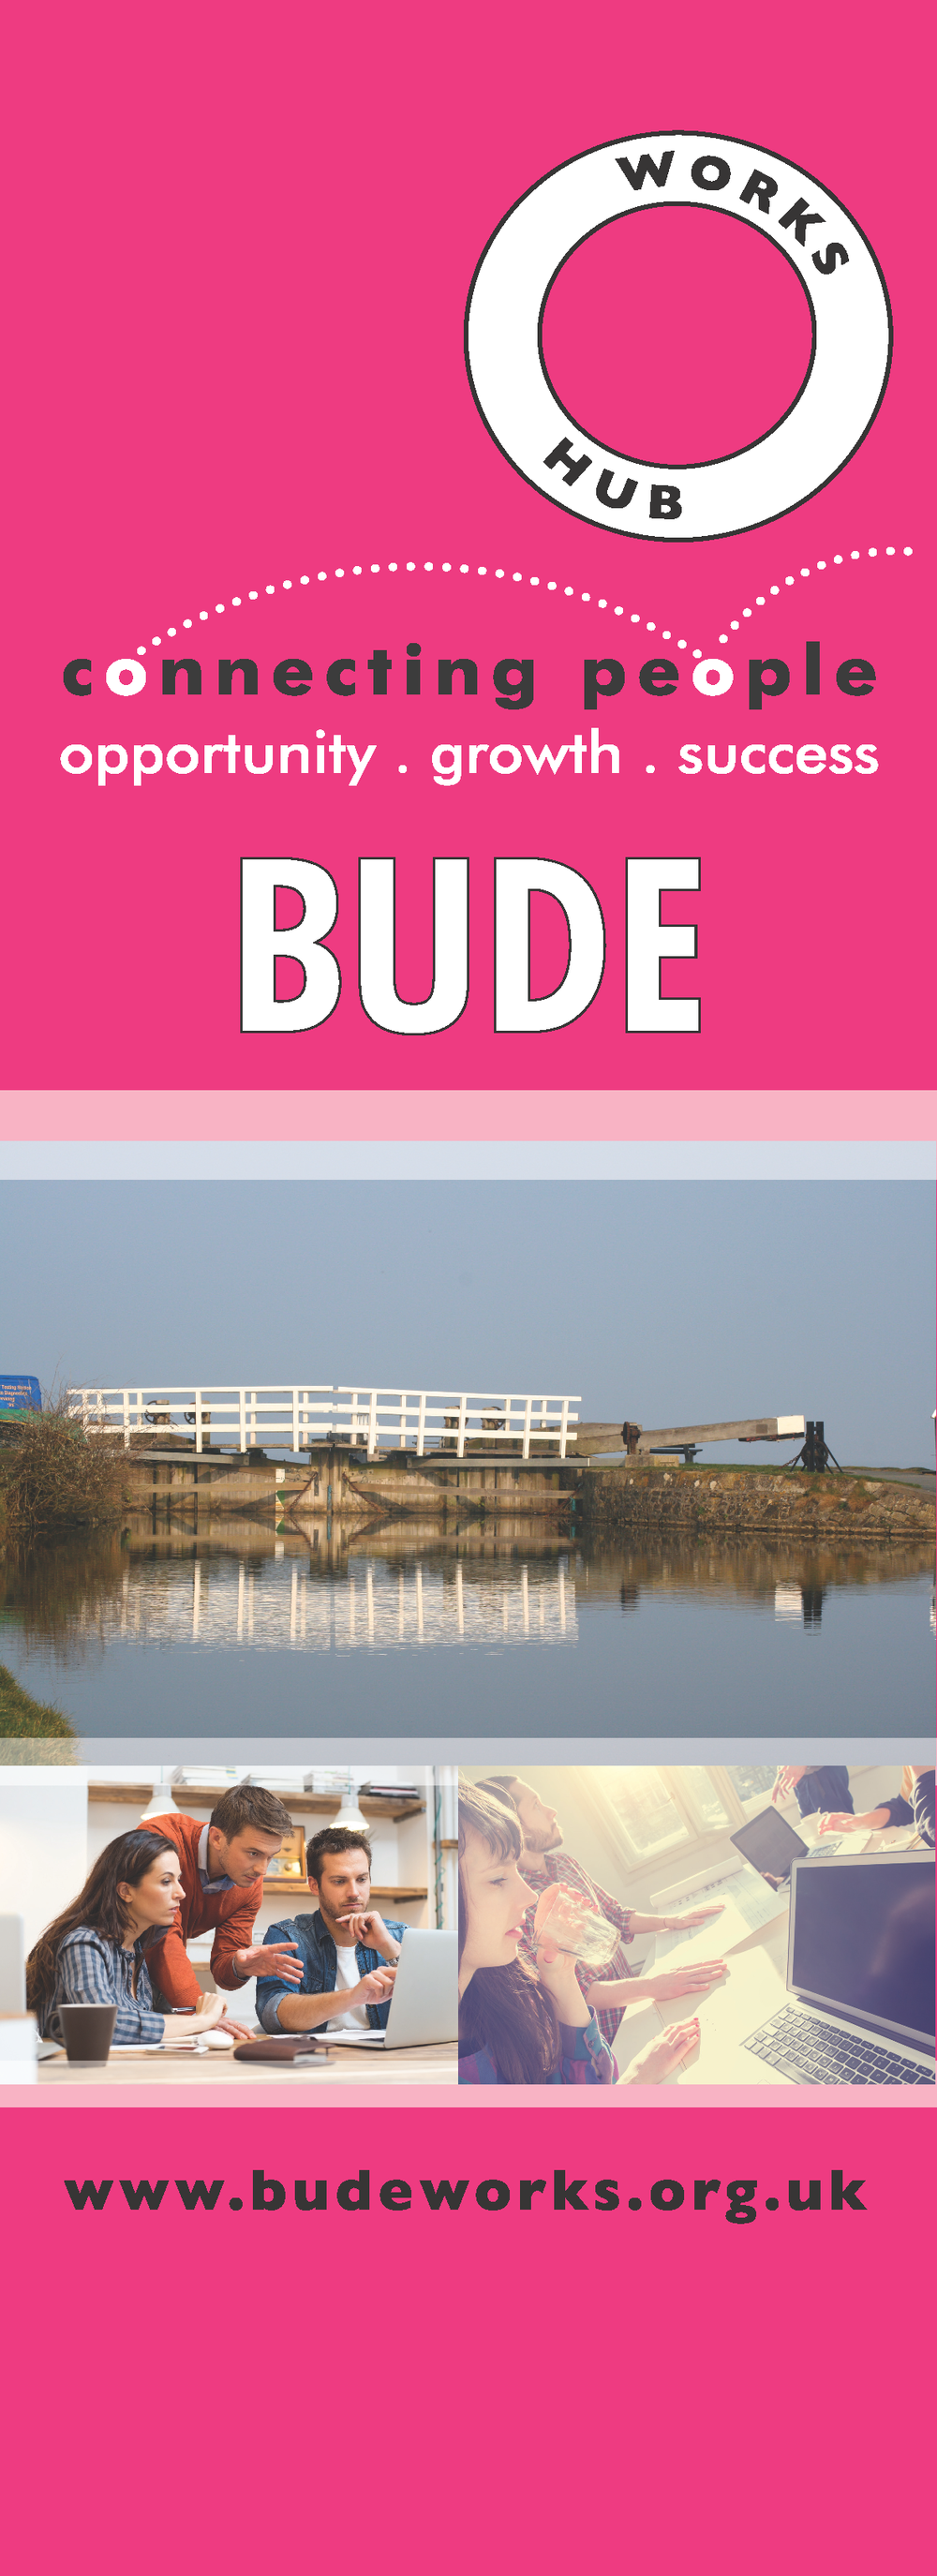 Bude Works Banner Artwork BudeOL.png